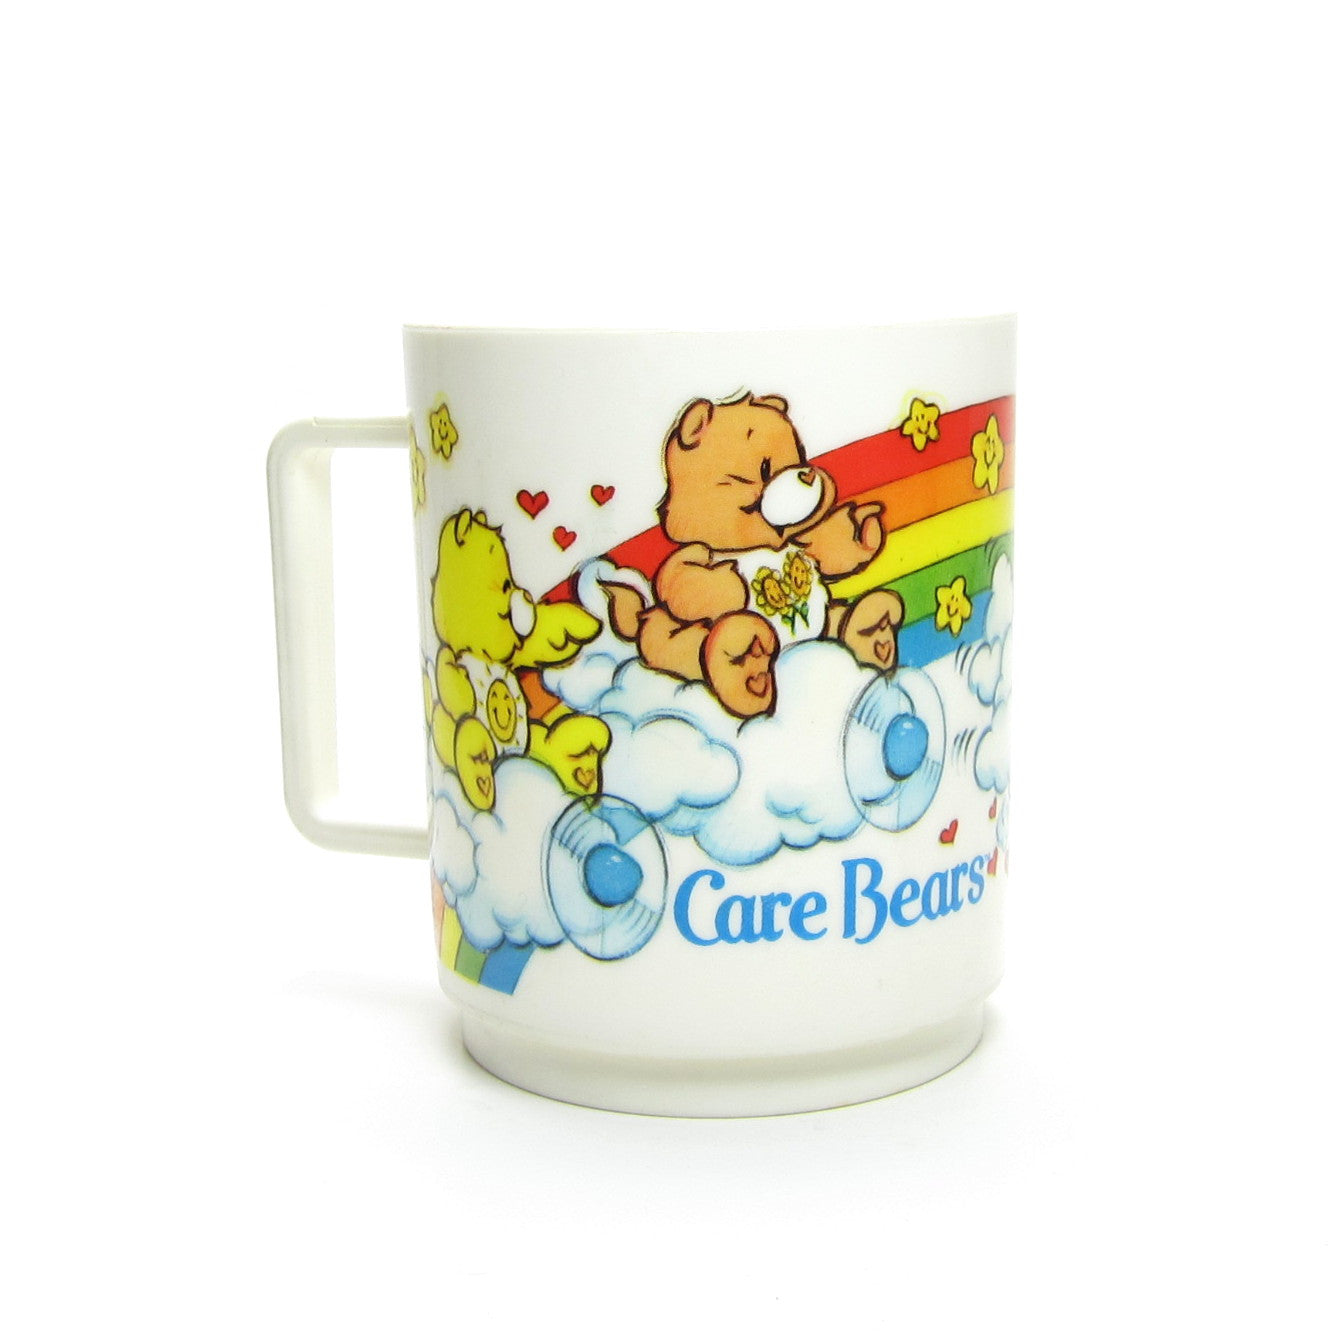 Care Bears plastic Deka cup or mug with handle